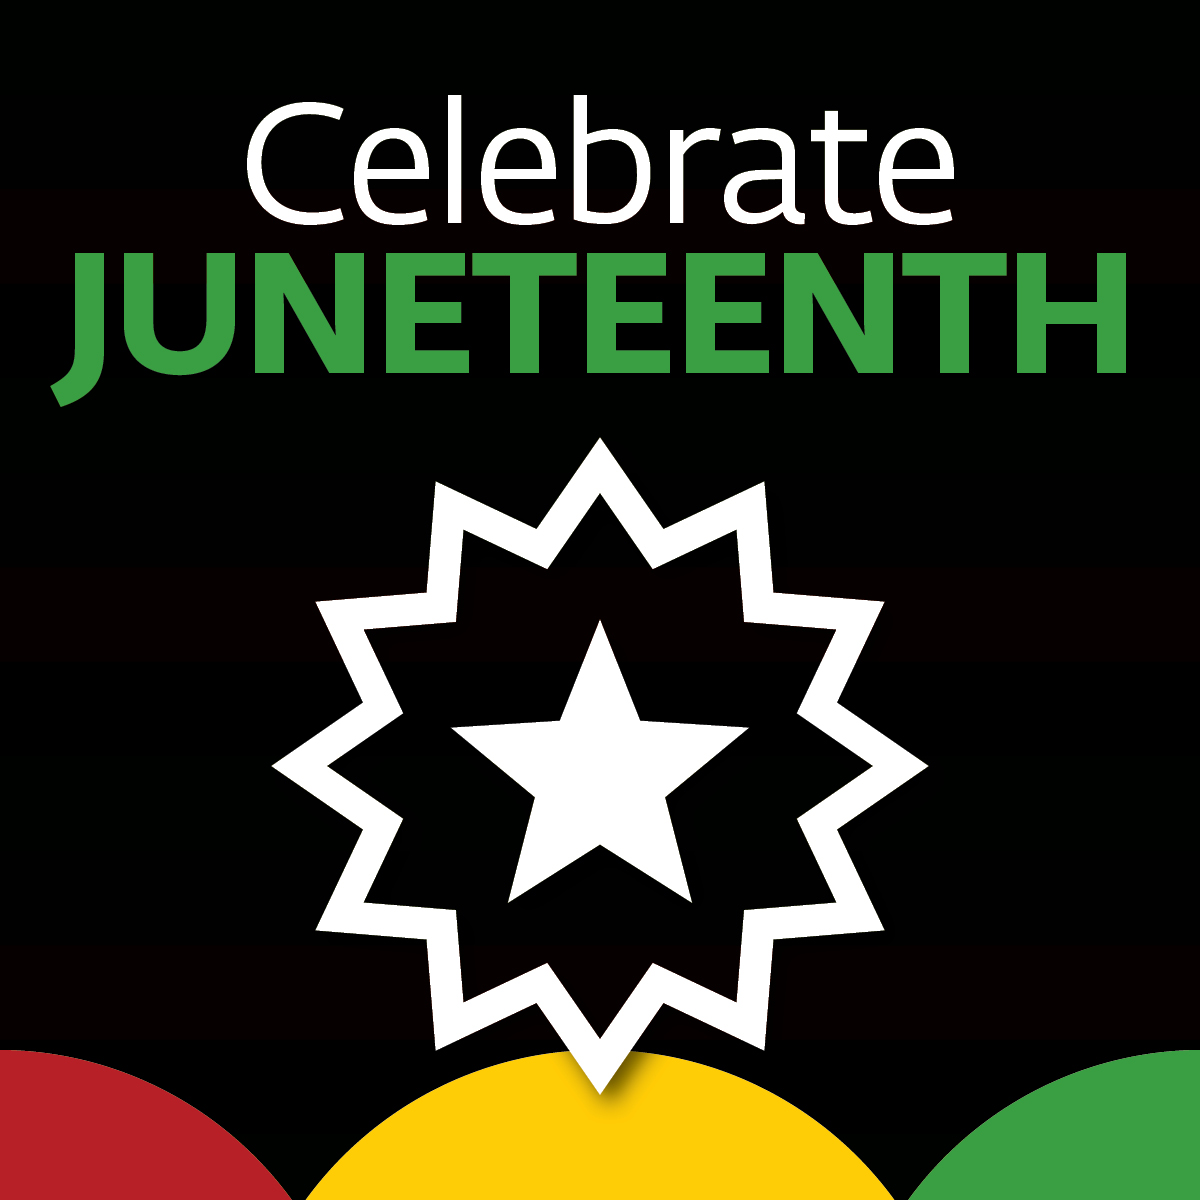 Today we commemorate Juneteenth, the emancipation of enslaved people in the United States. Learn more by visiting the National Museum of African American History & Culture! If you can't make the trip to D.C., why not check them out online here: https://t.co/c0wSlvO2QQ https://t.co/NdZhjfshkO